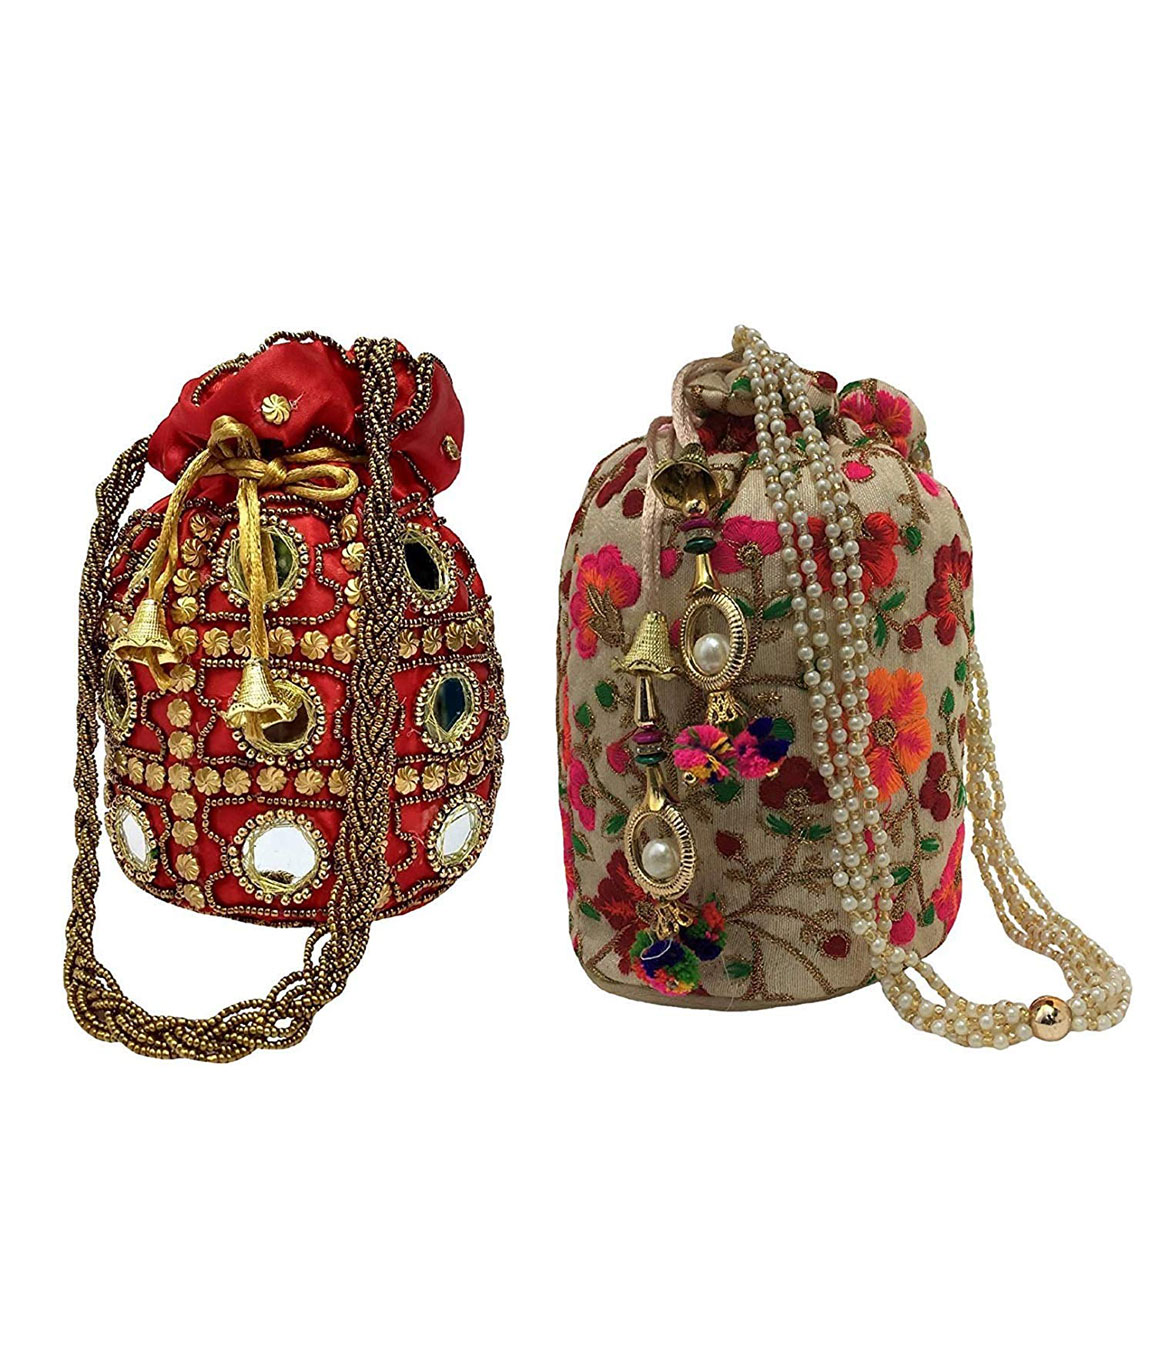 DN Enterprises Latest & Attractive Potli Bags For Women Fancy & Designer Potli Combo